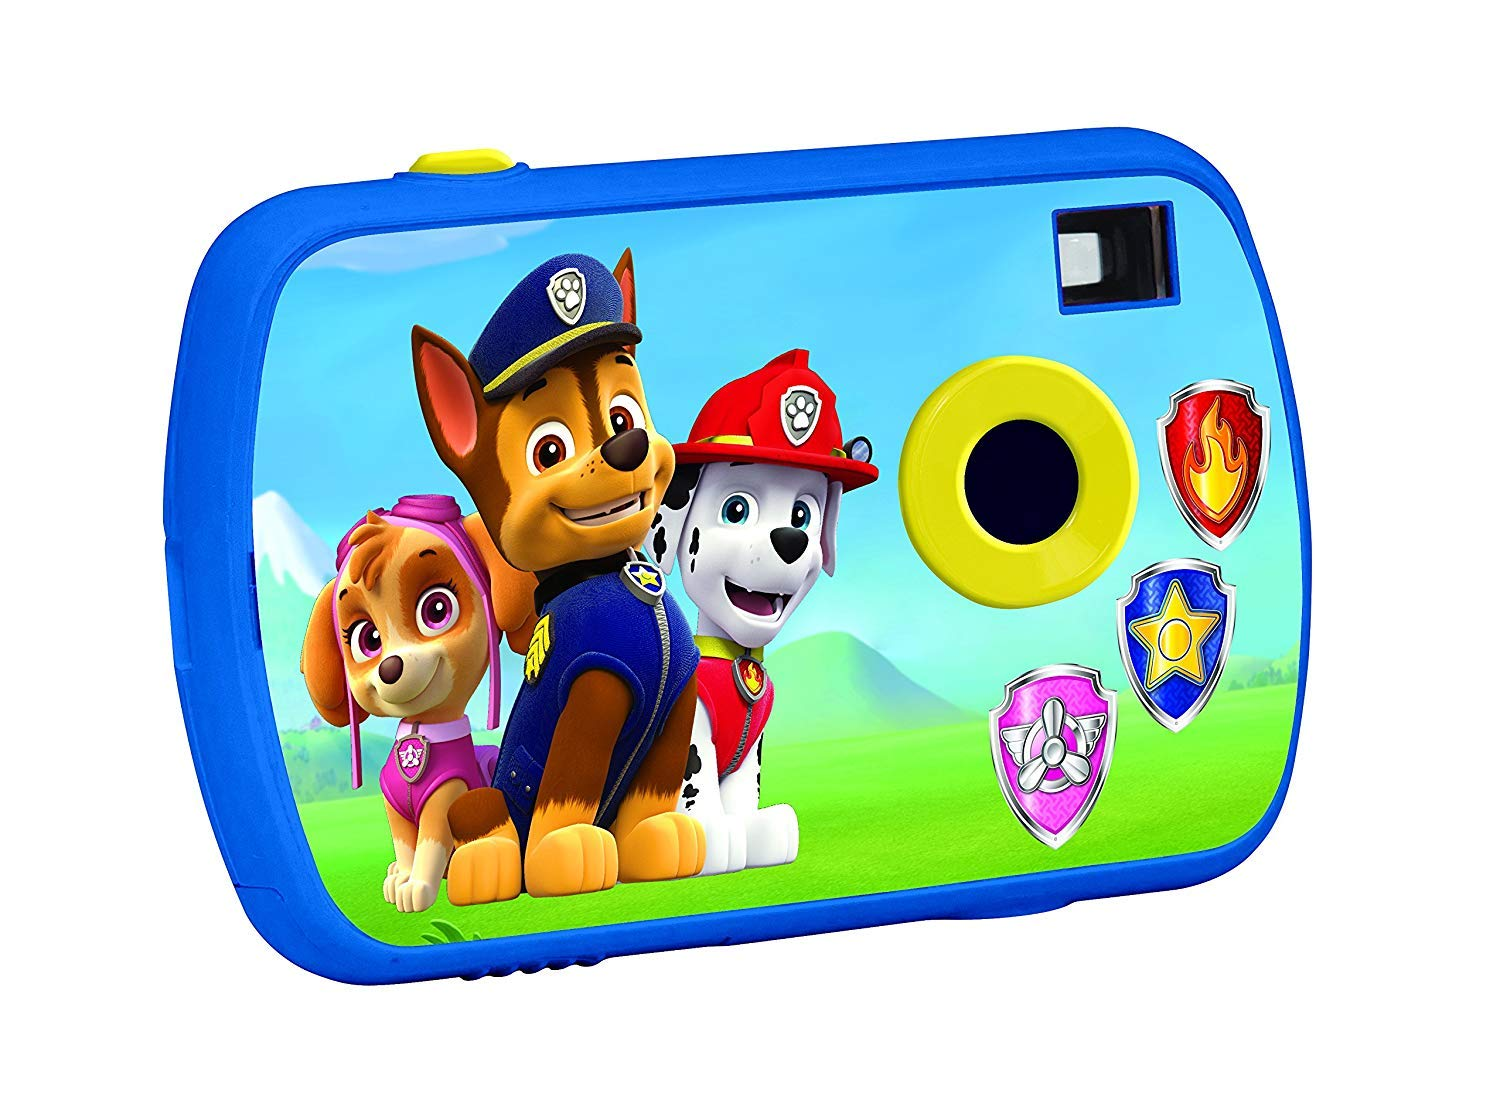 My First Real Digital Camera for Kids Ages 5 - 18 Years by Lexibook Cameras (Image #1)